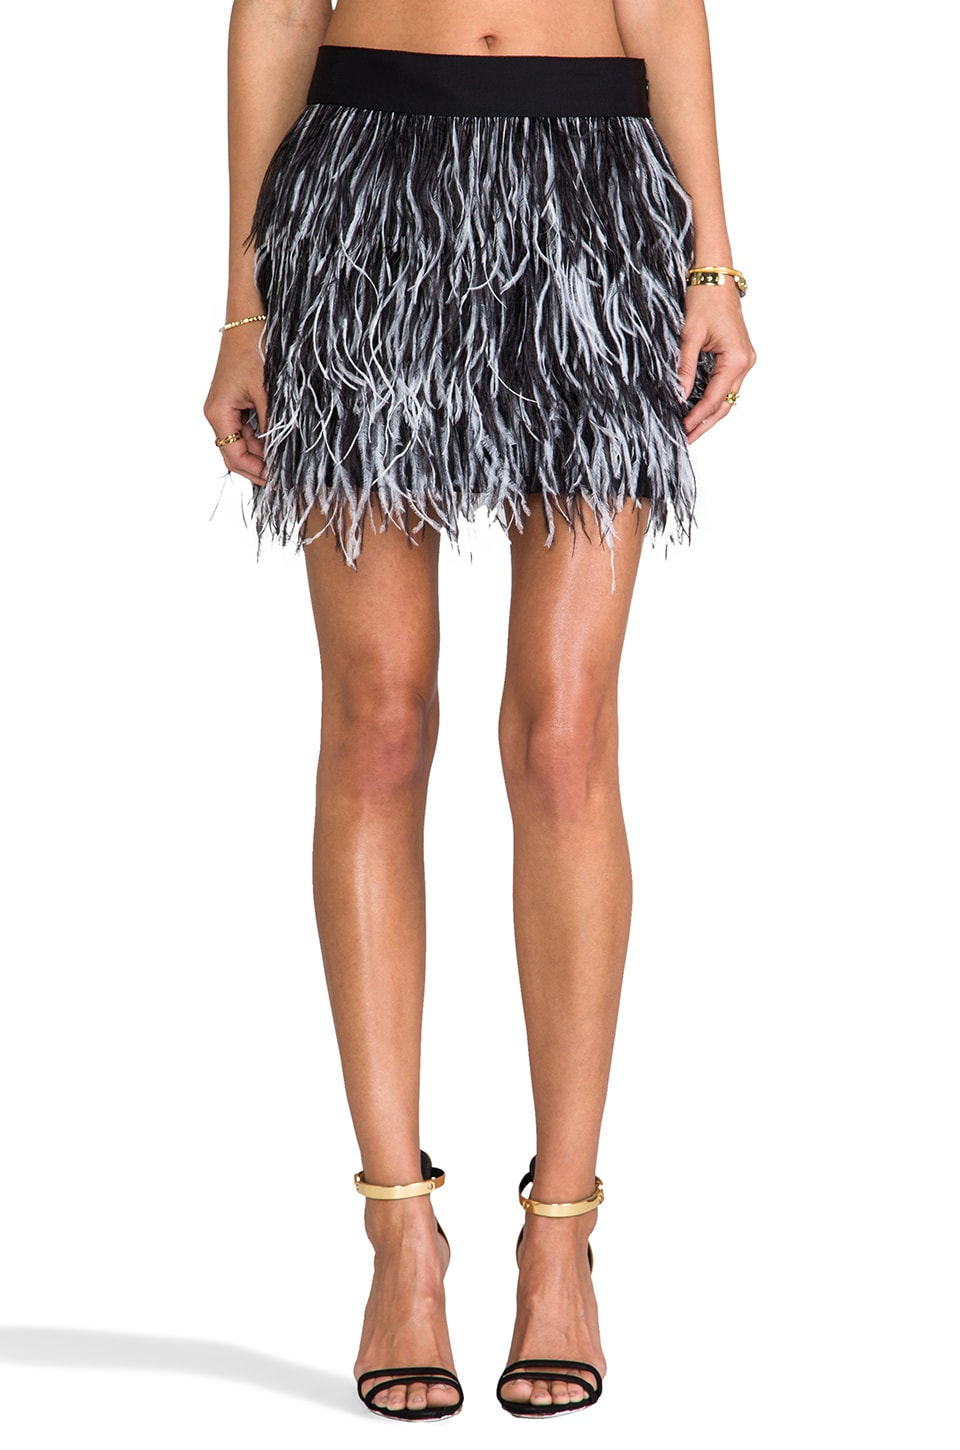 MILLY Cocktail Ostrich Fringe Skirt in Black & White